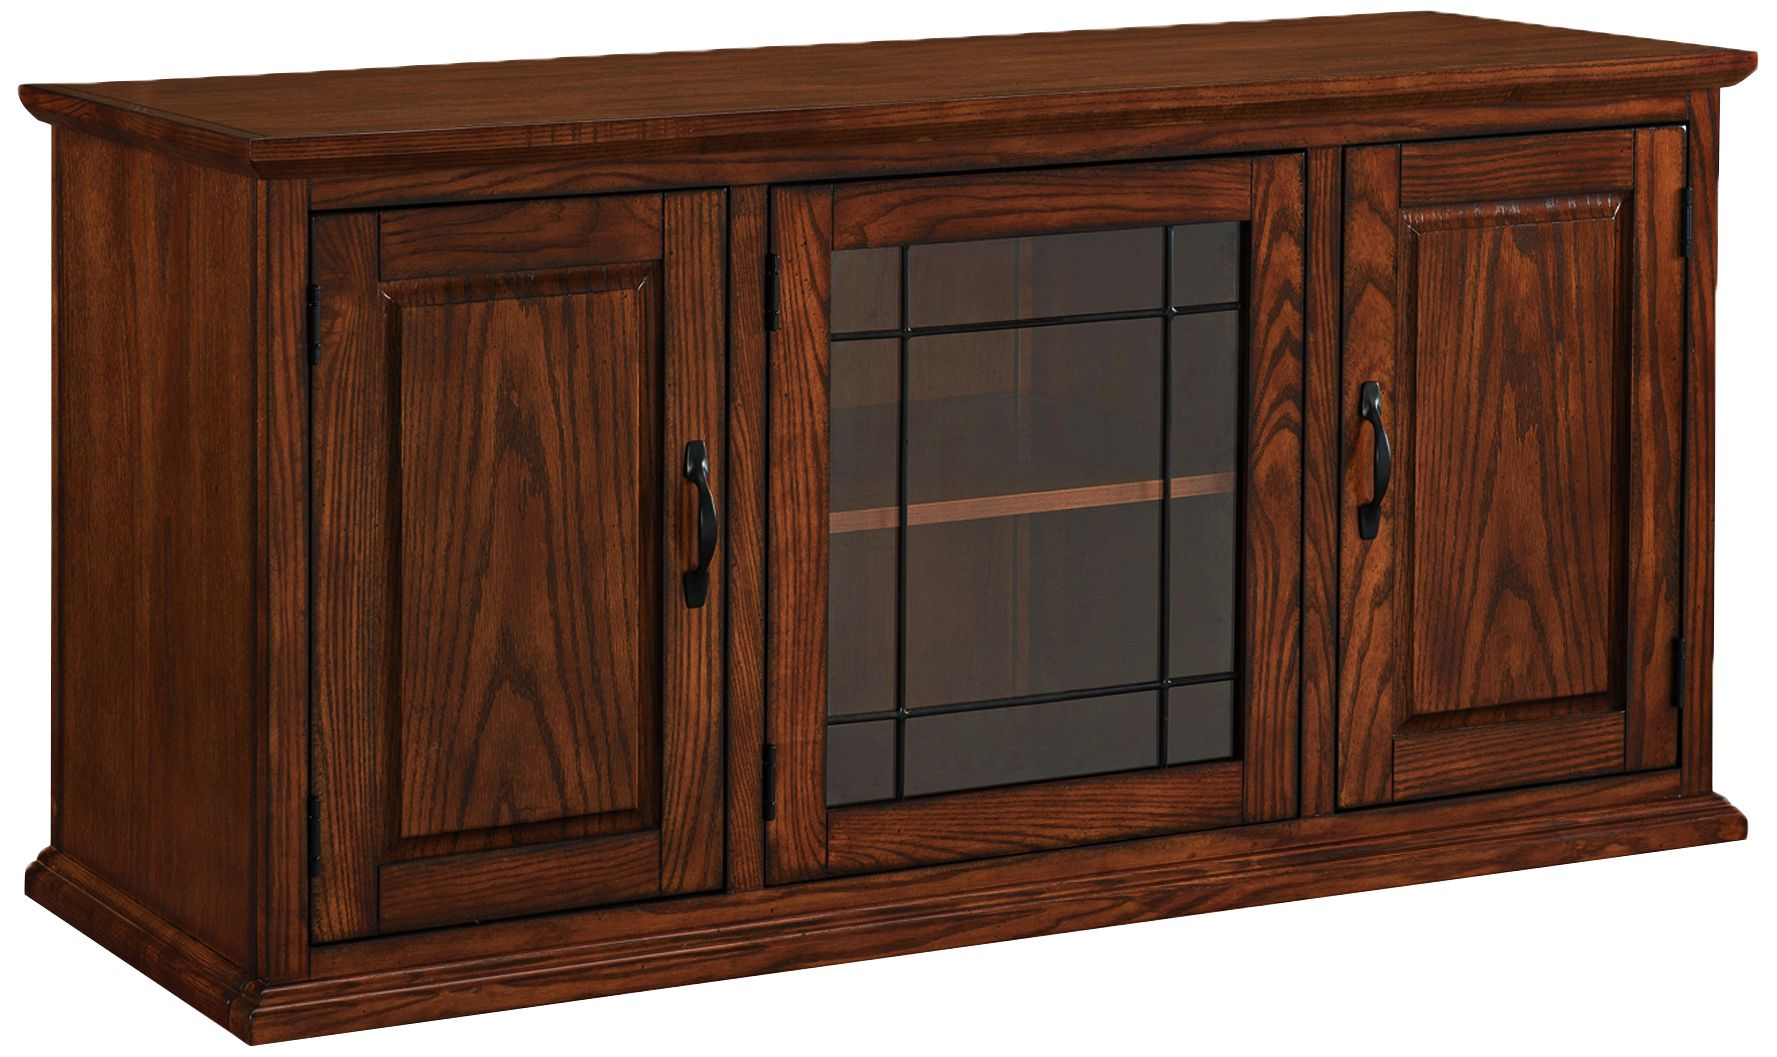 Le Meilleur Leick 50 Wide Burnished Oak 3 Door Leaded Glass Tv Ce Mois Ci